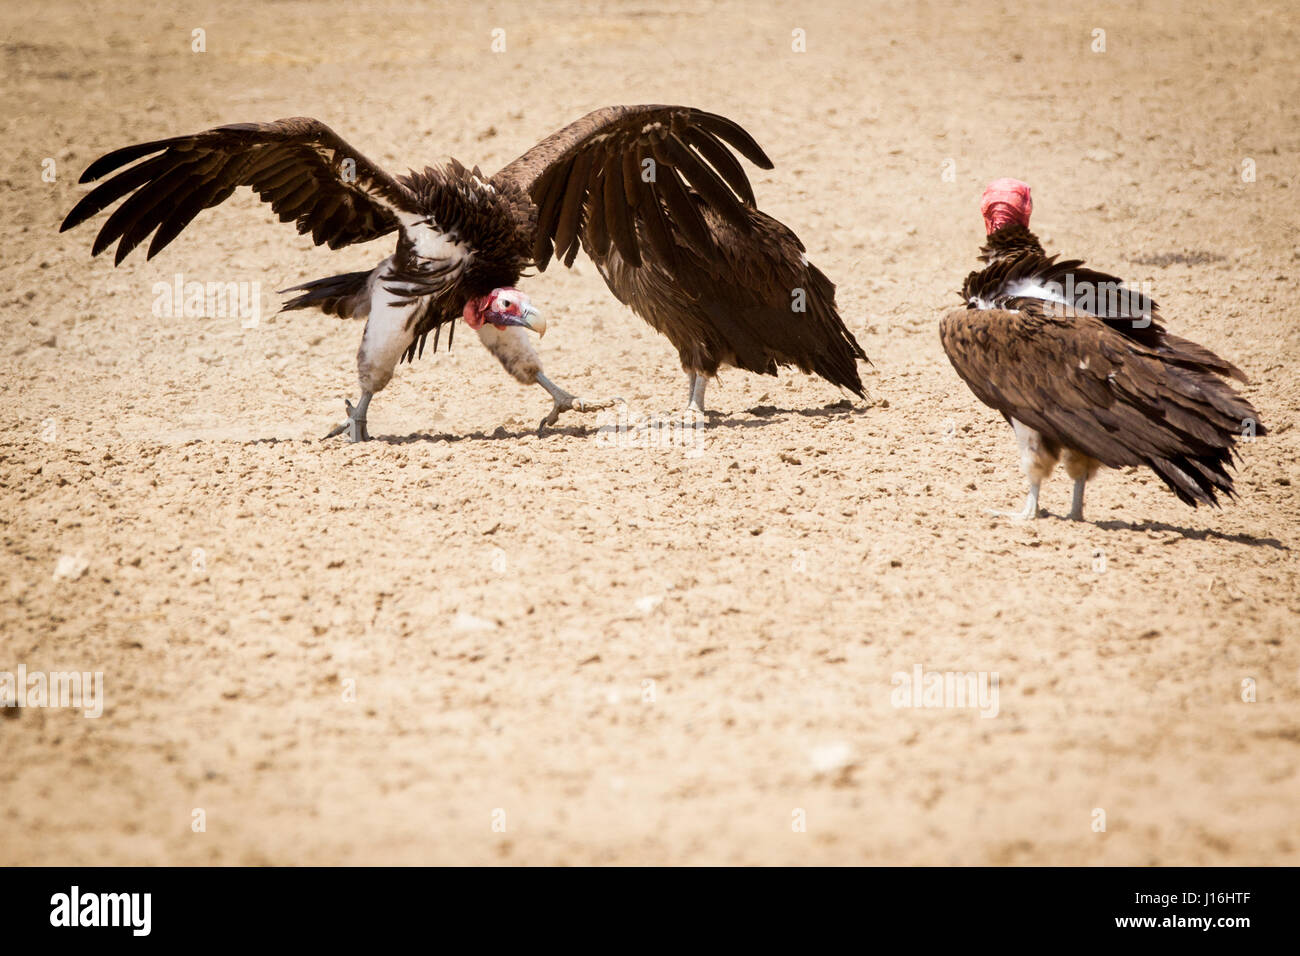 Two lappet faced vultures in a fight in the Kalahari in Botswana, Africa - Stock Image